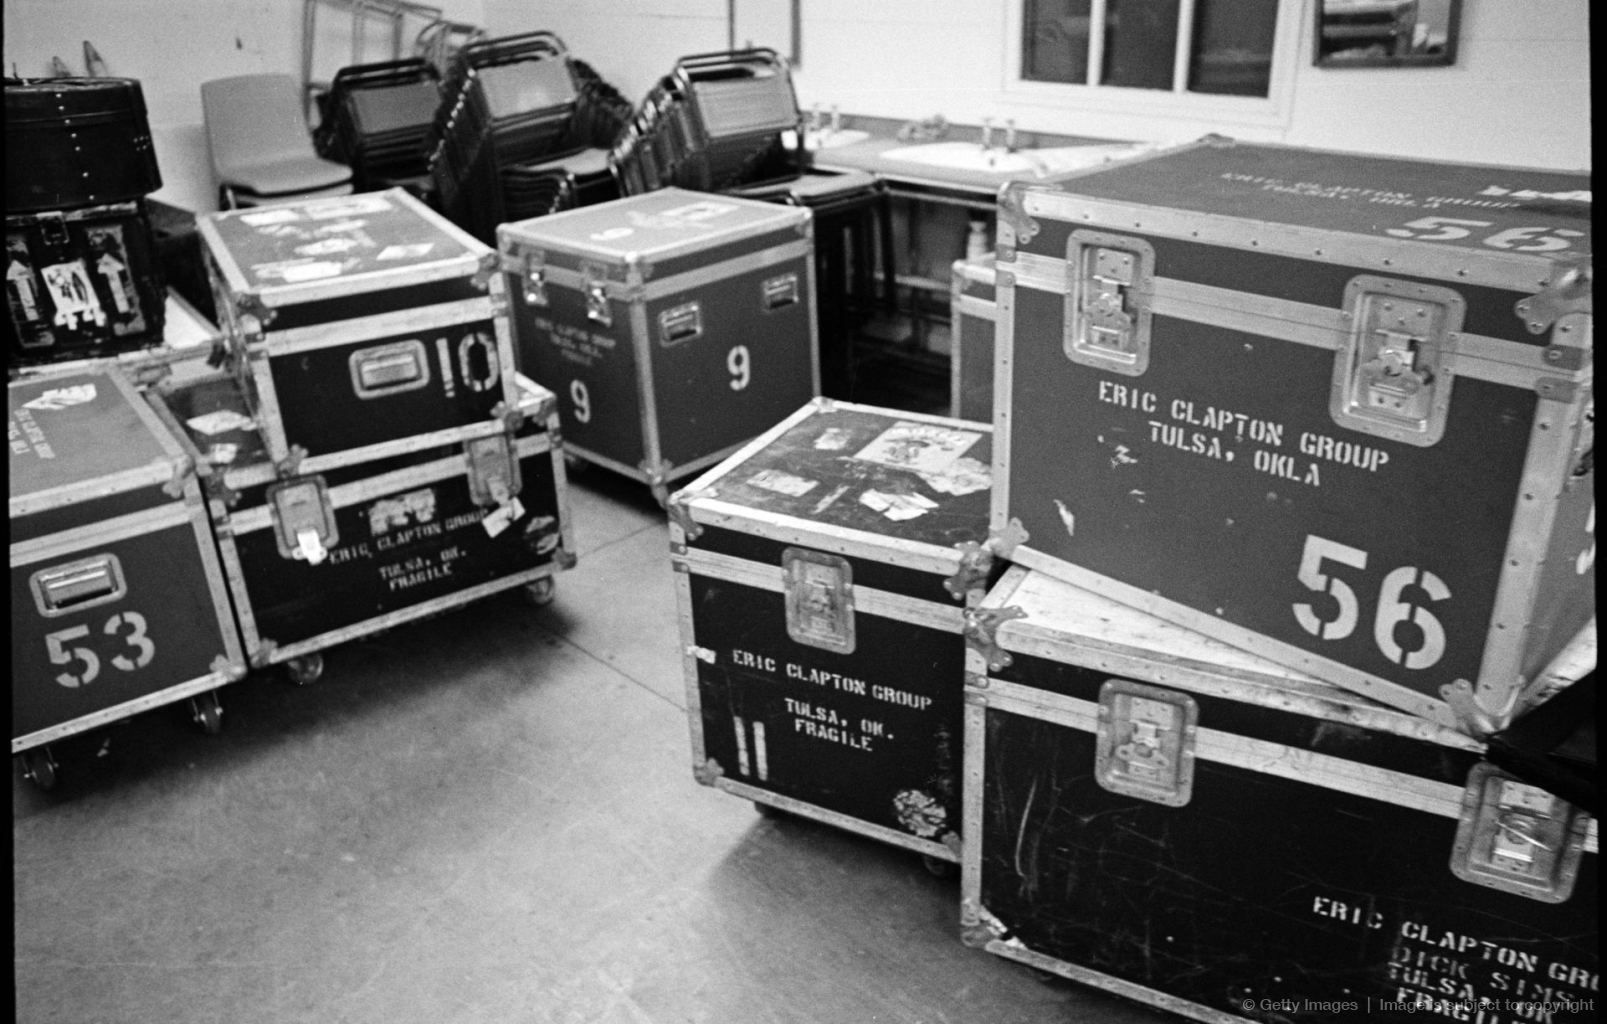 Carrying cases Concert photography, Sound room, Music school